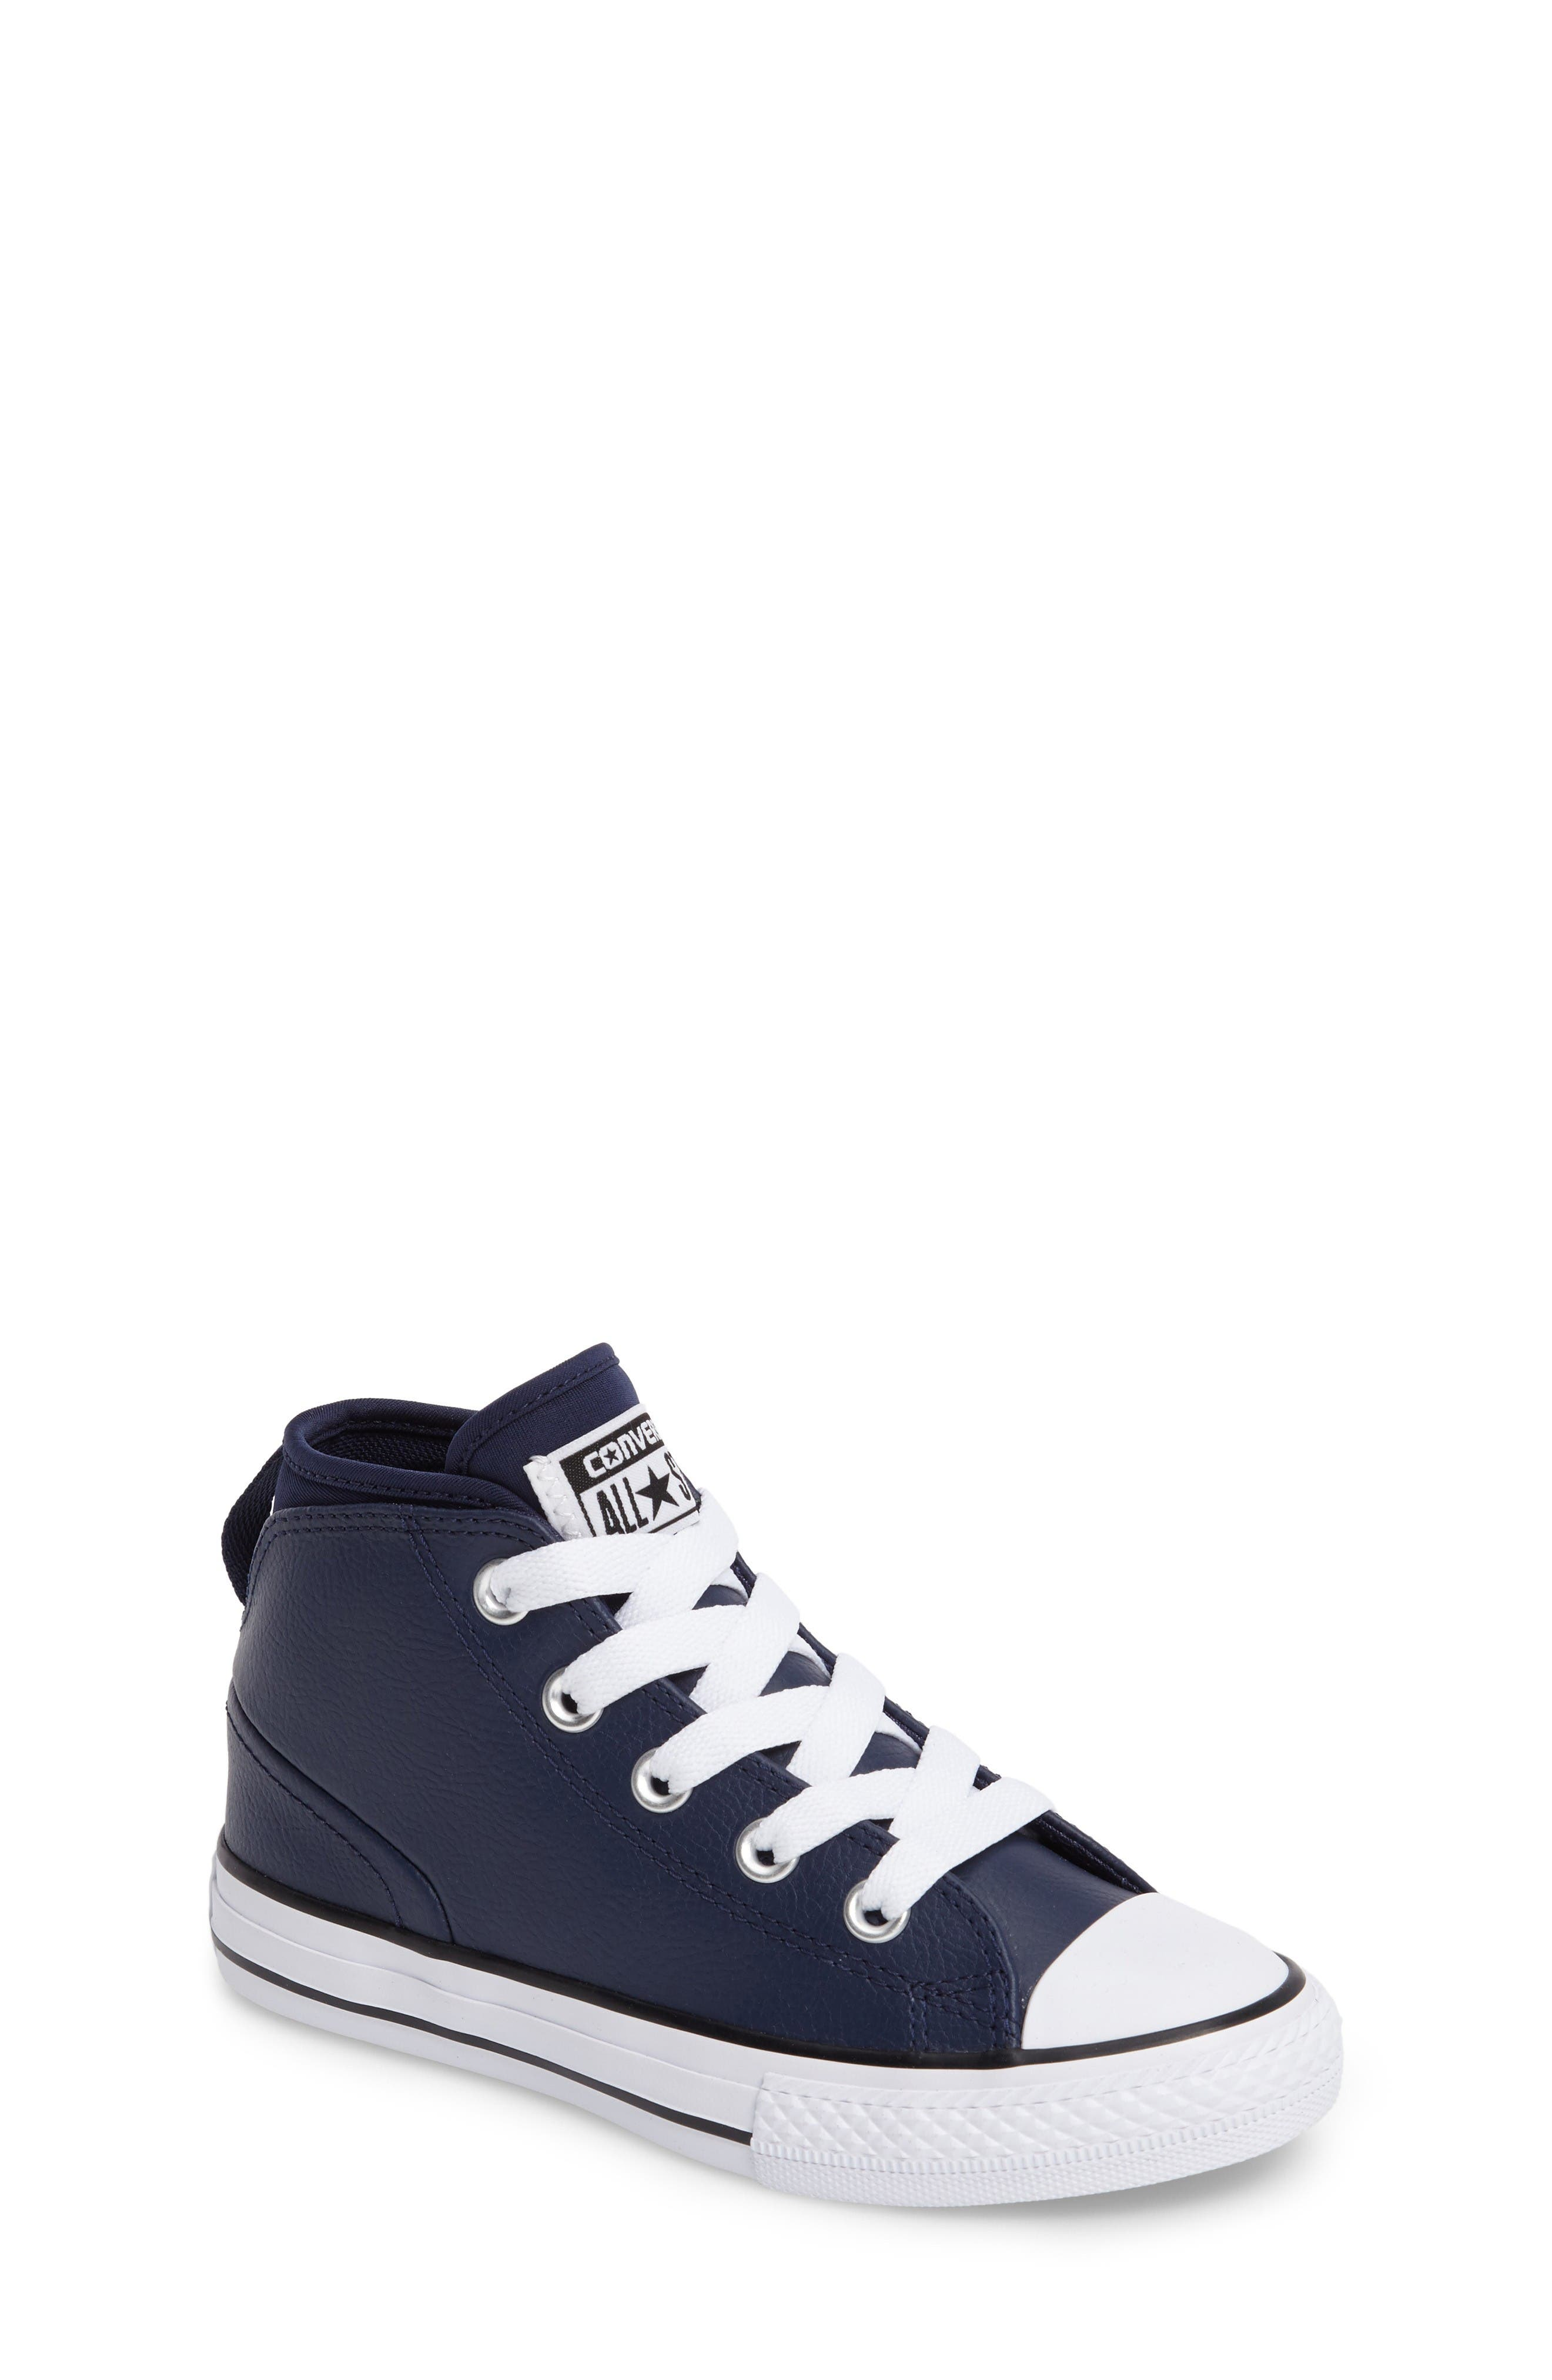 Converse Chuck Taylor® All Star® Syde Street High Top Sneaker (Baby, Walker, Toddler, Little Kid & Big Kid)